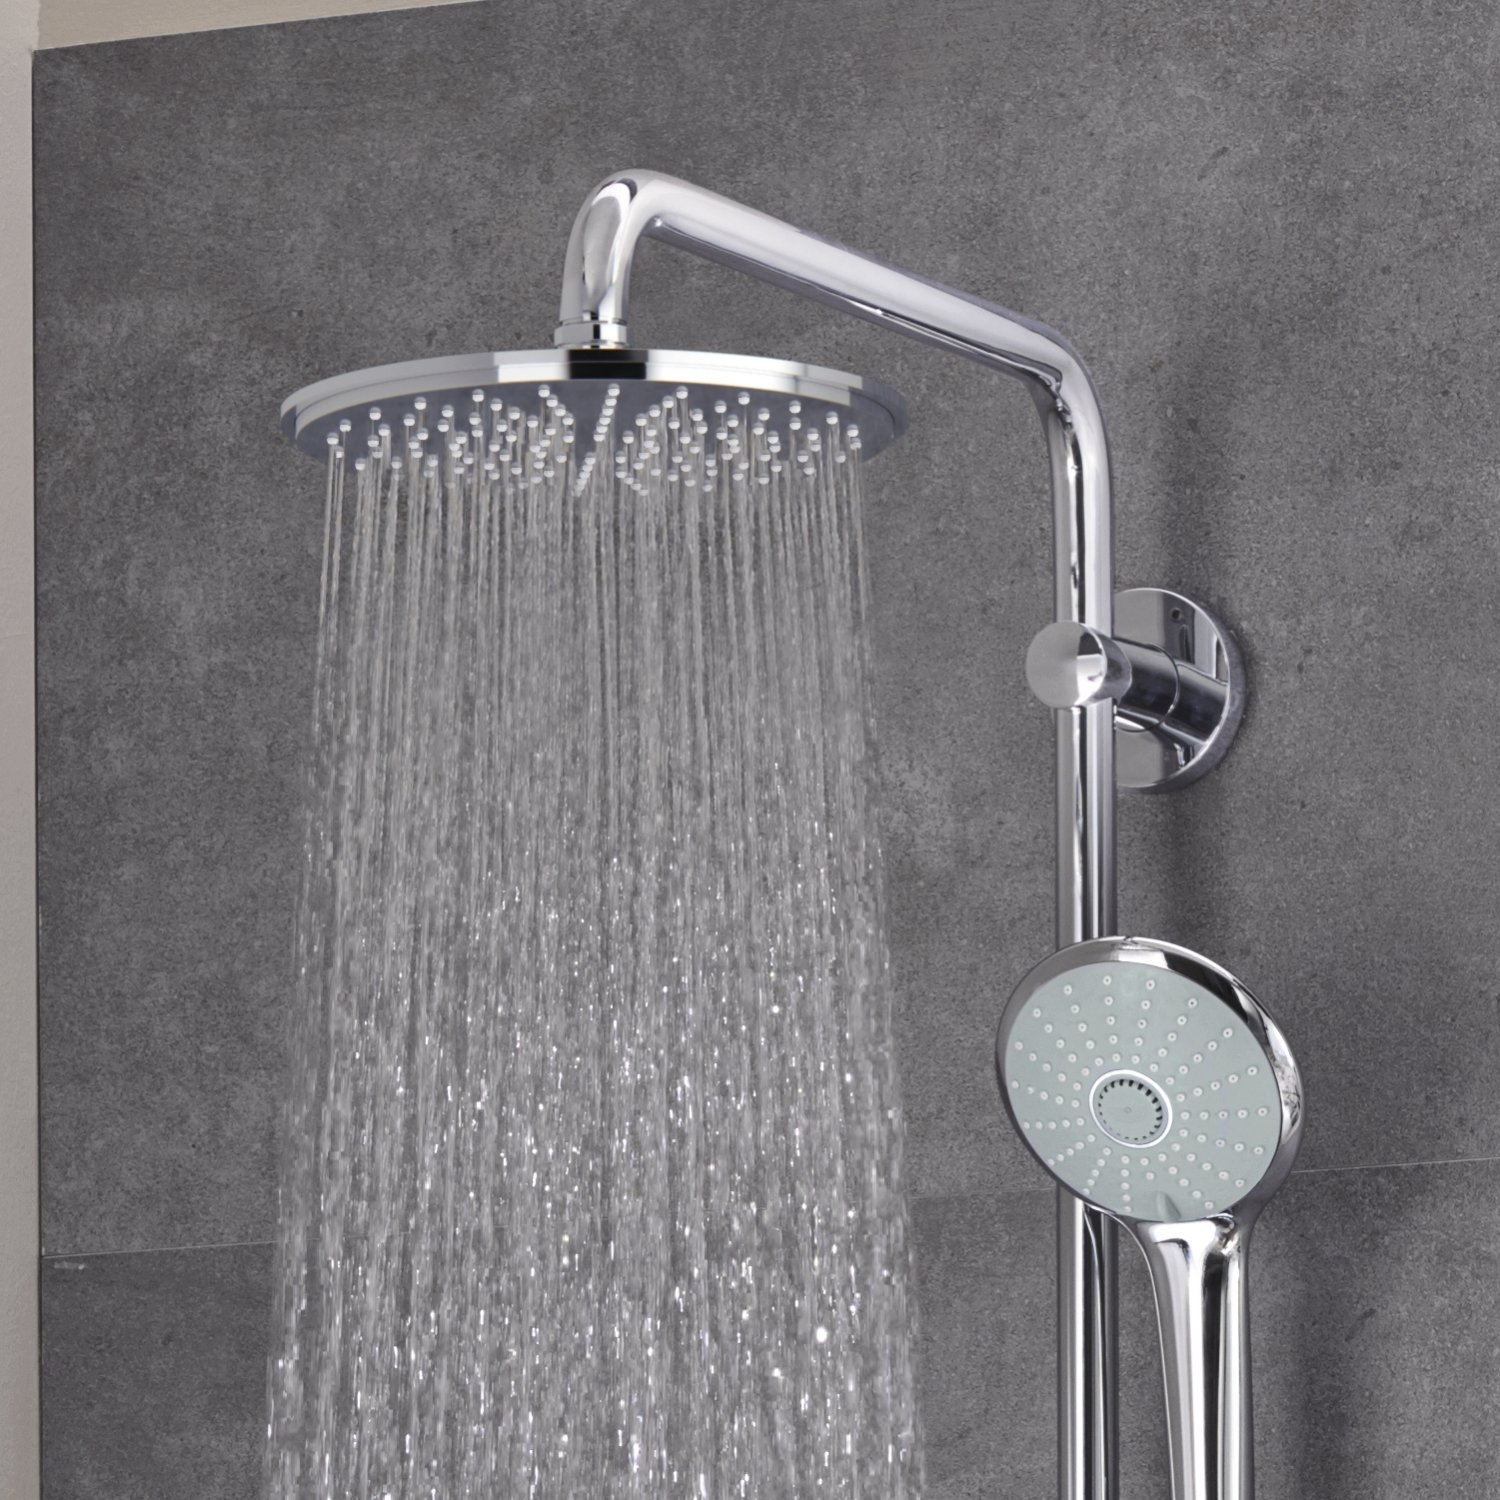 chrome slide system p grohe included in bars retro starlight fit shower arms valve